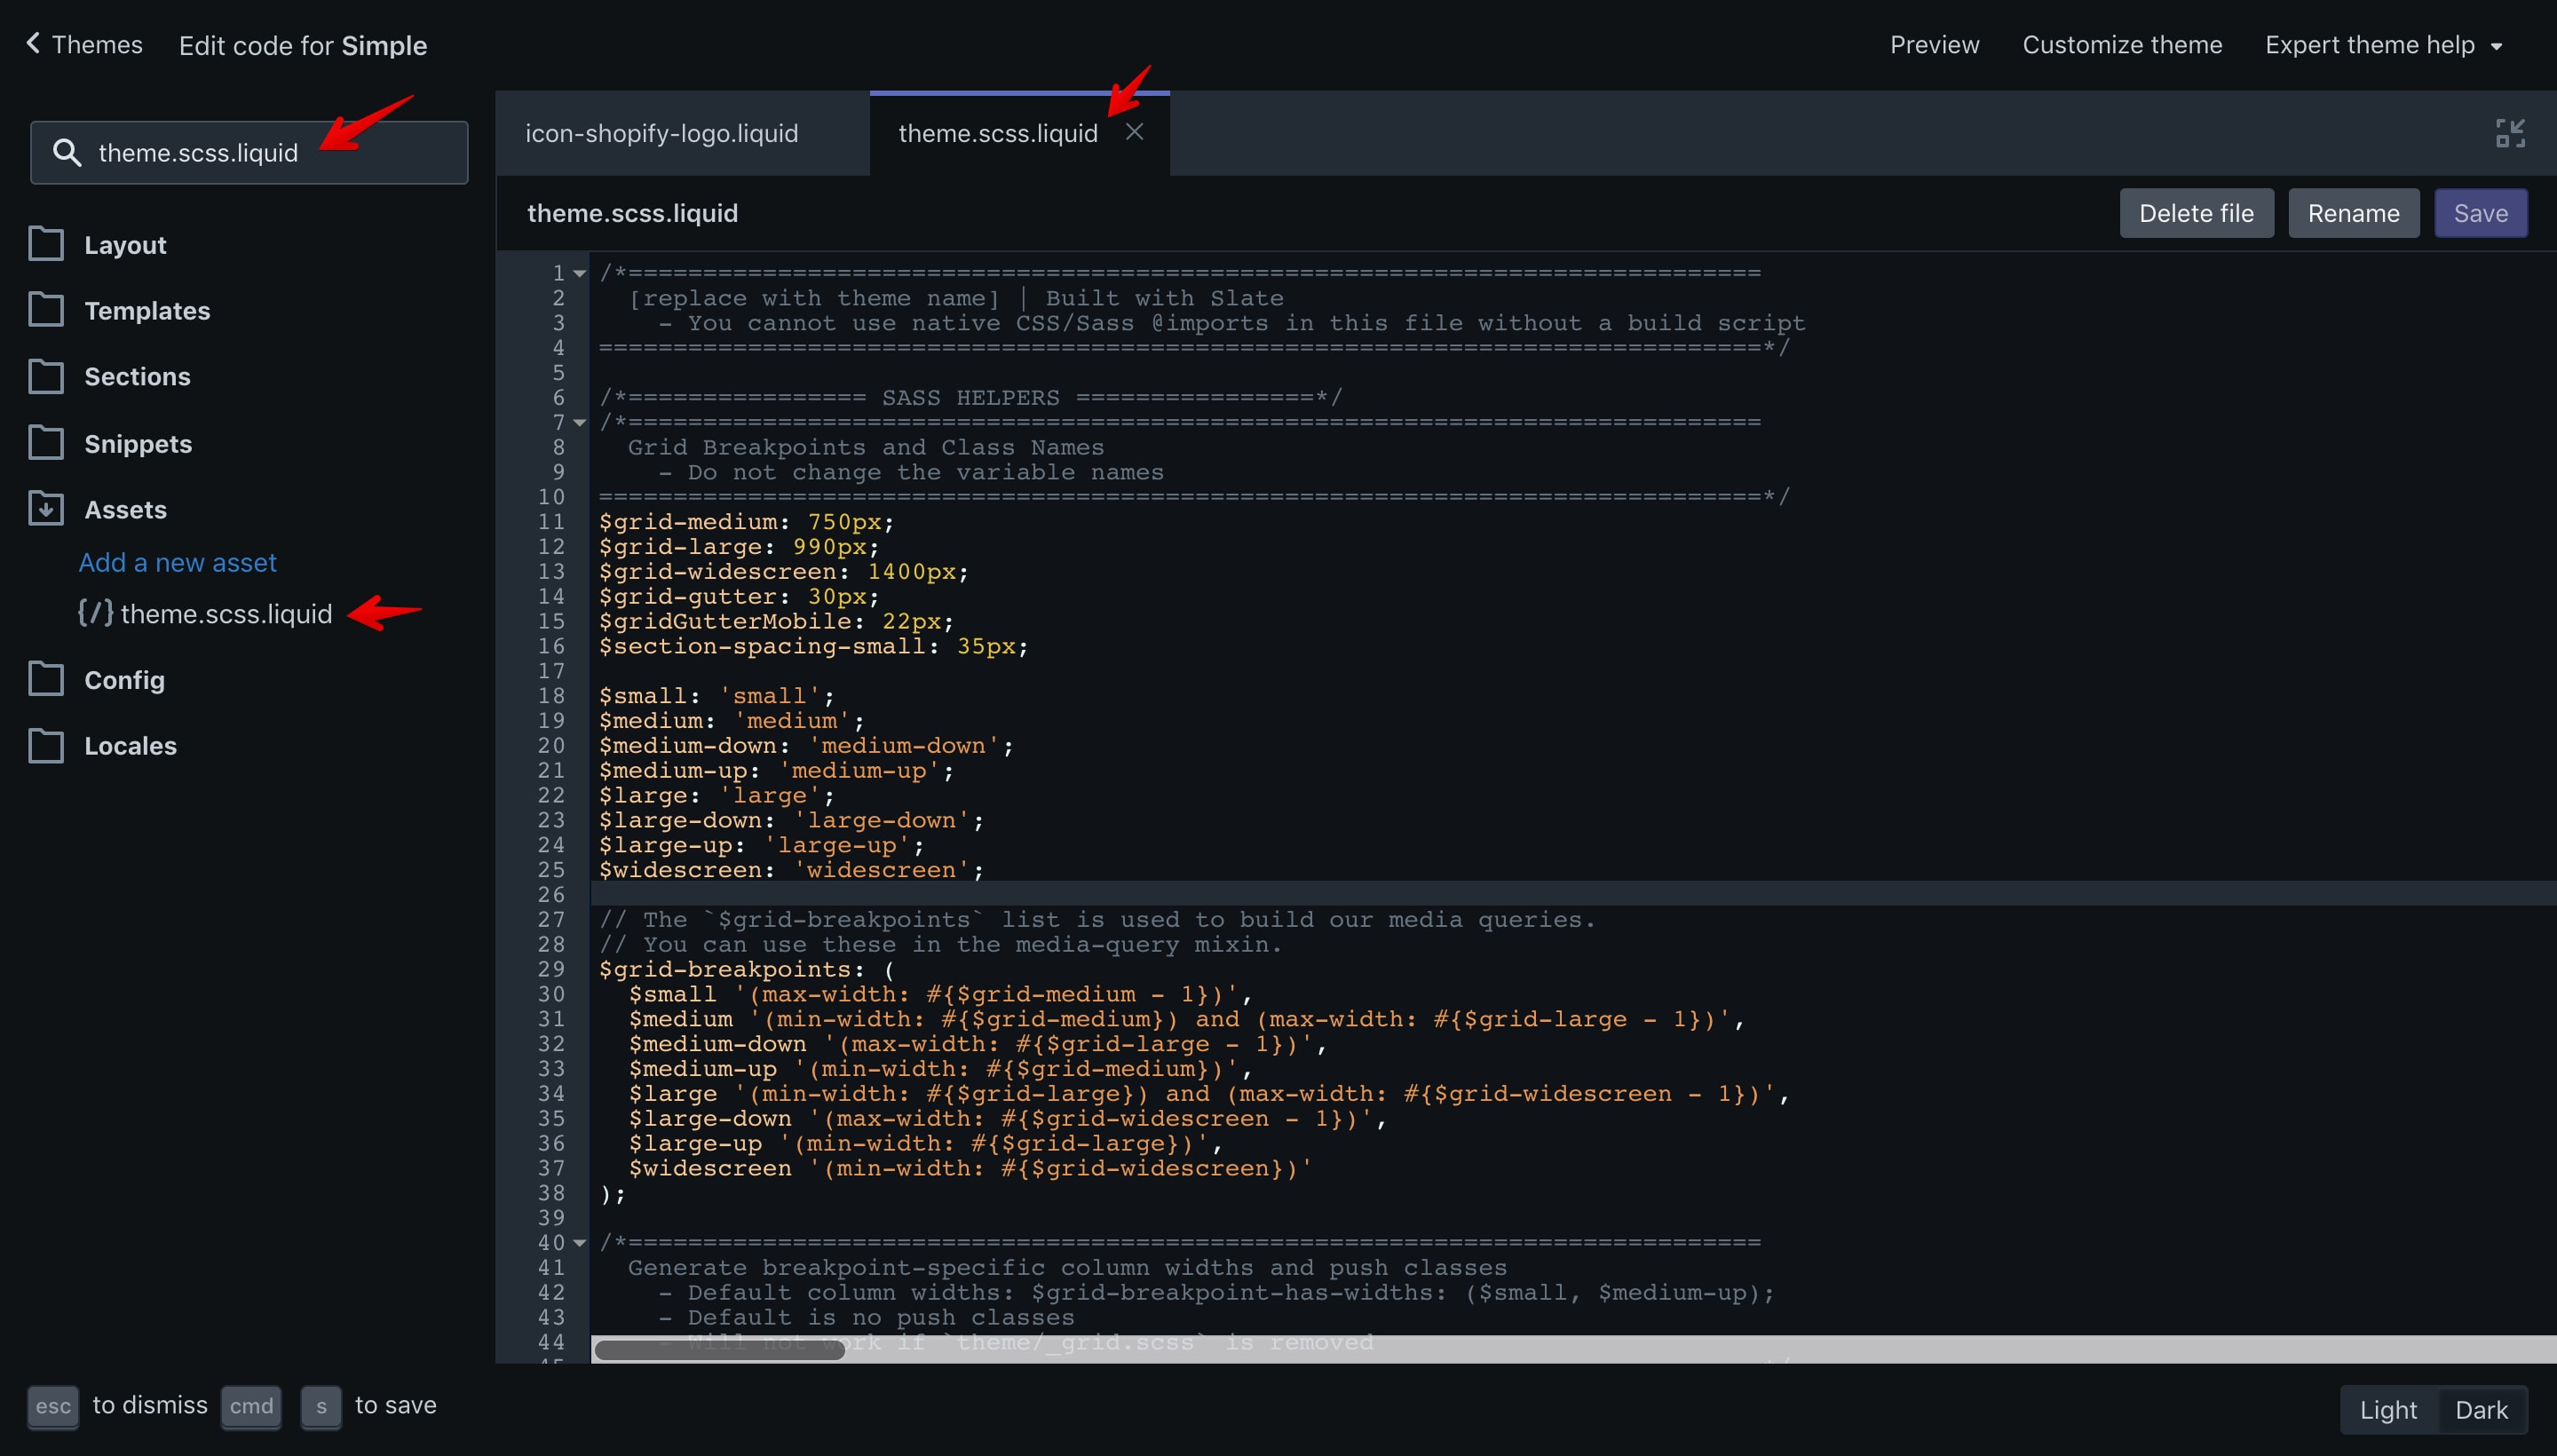 """Simple """"theme.scss.liquid"""" file. In this file are the theme styles."""